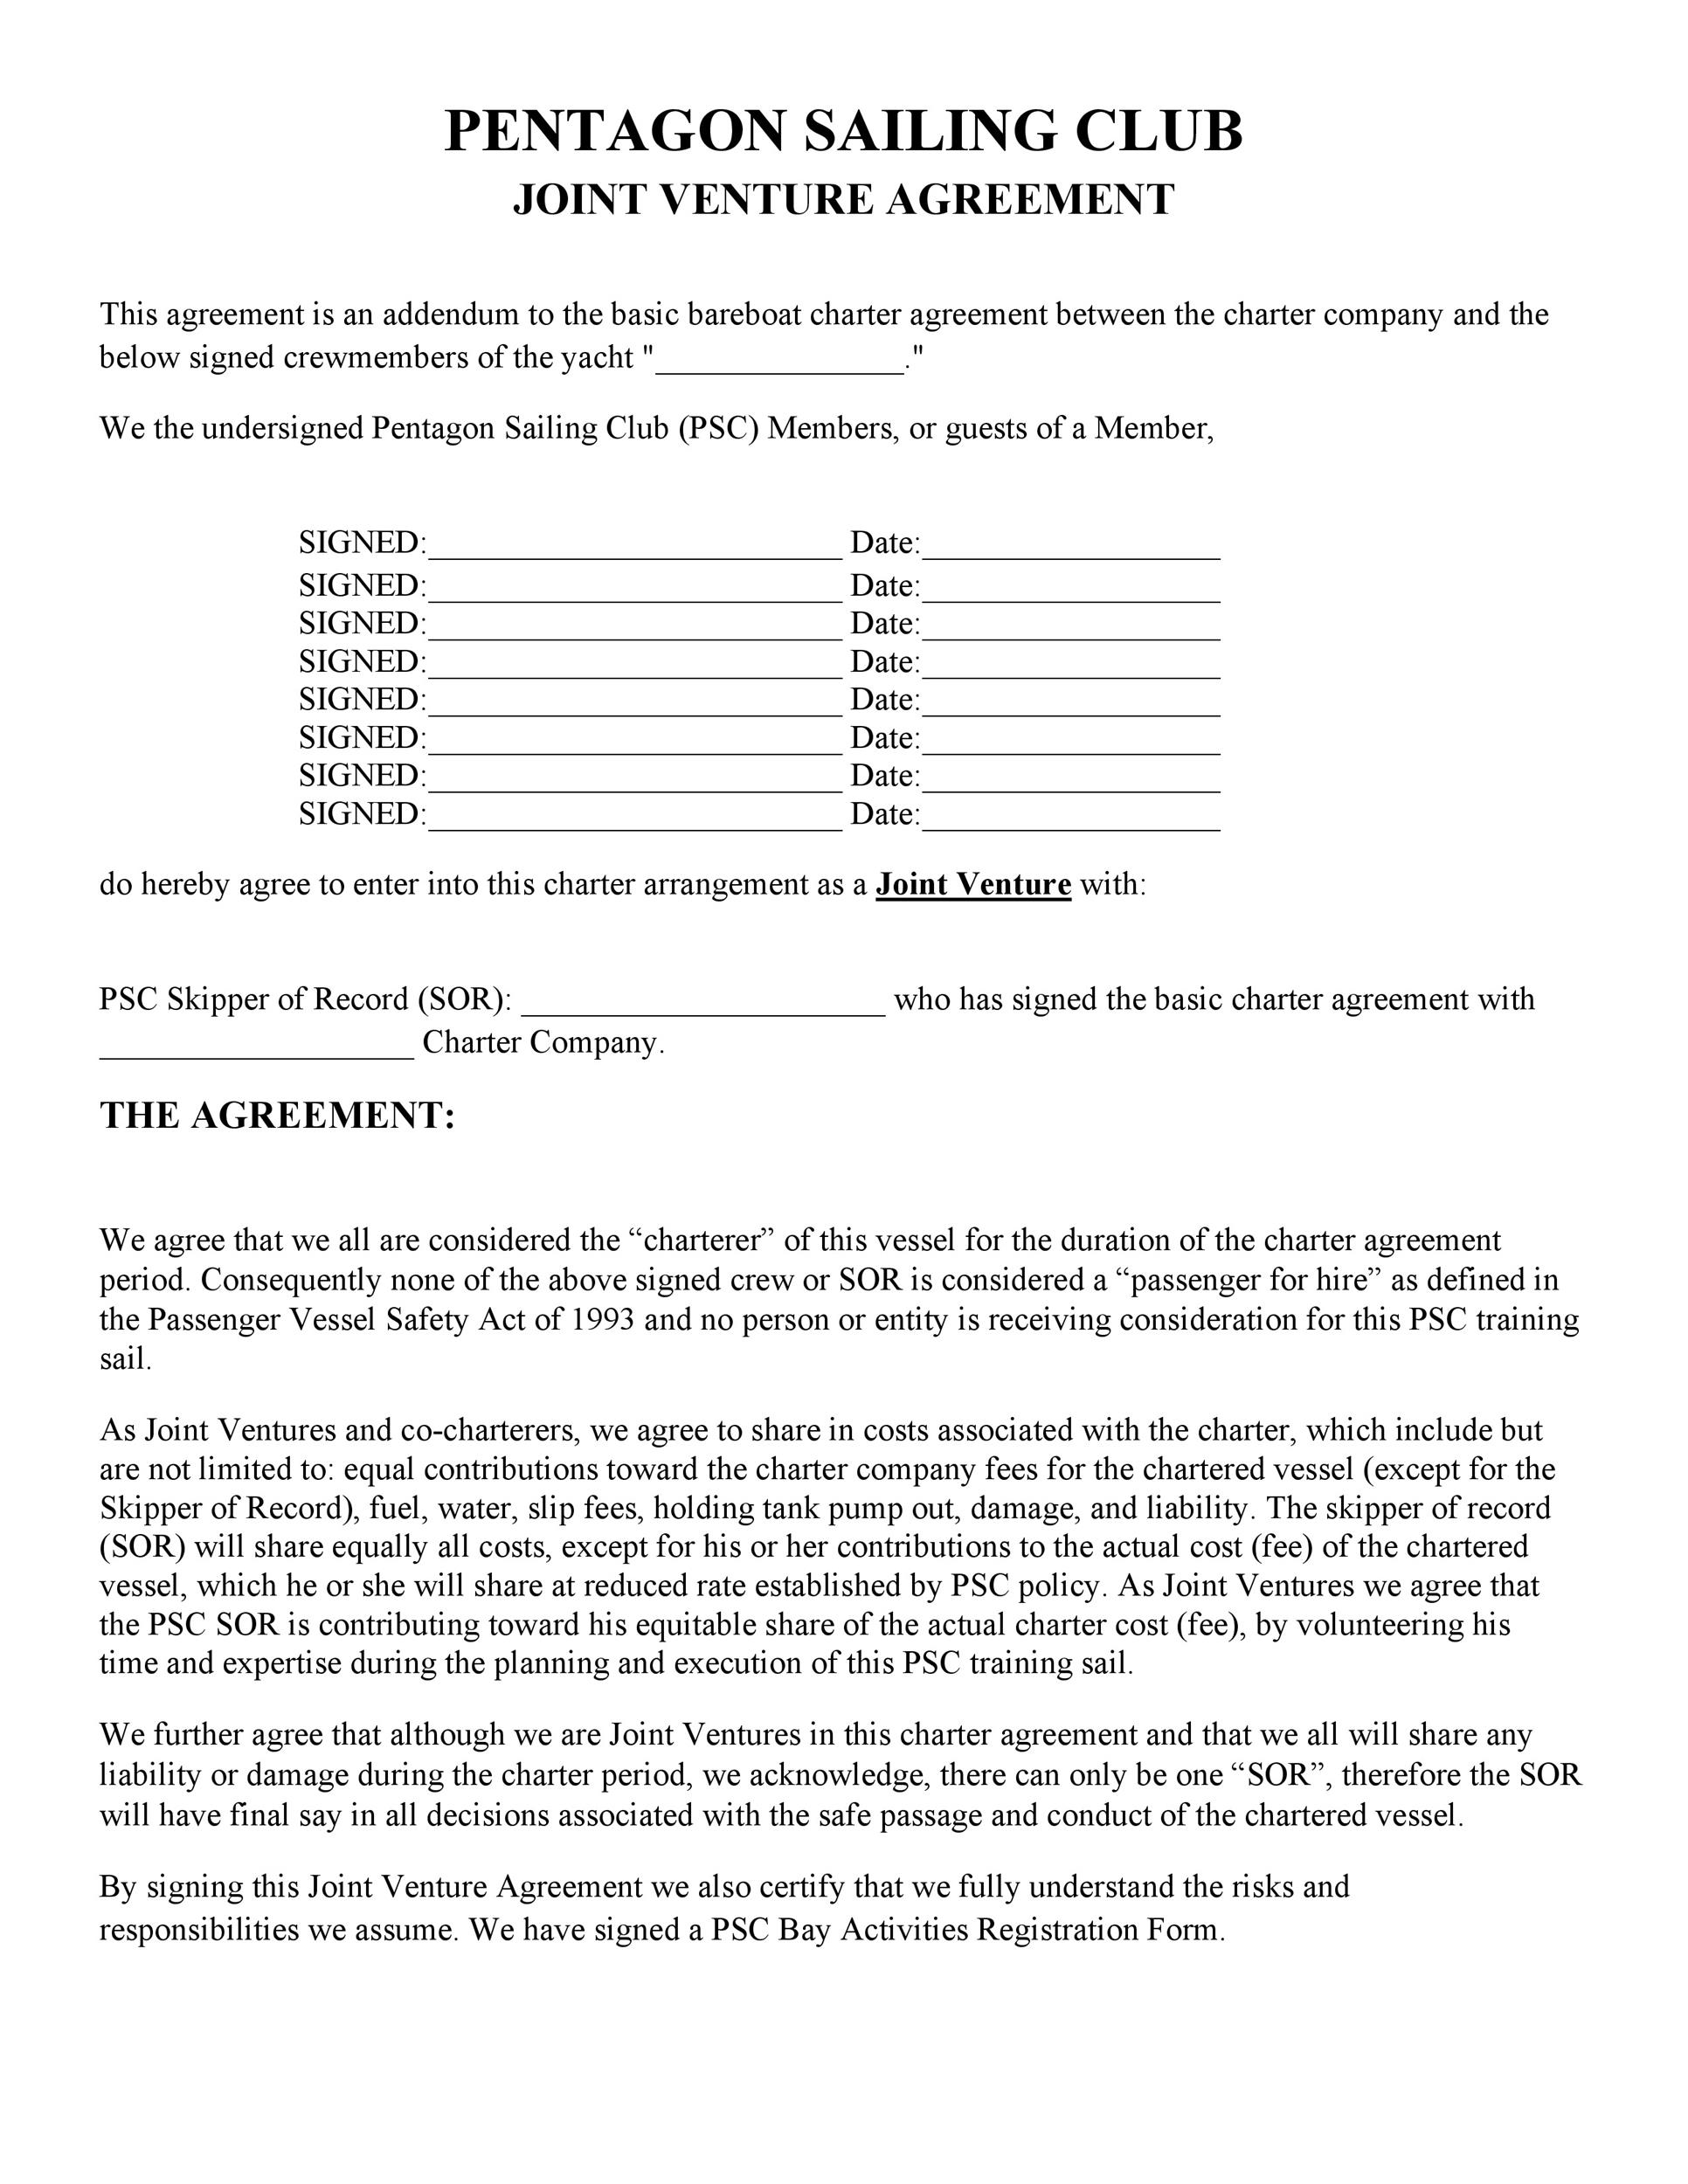 Bareboat Charter Agreement Template